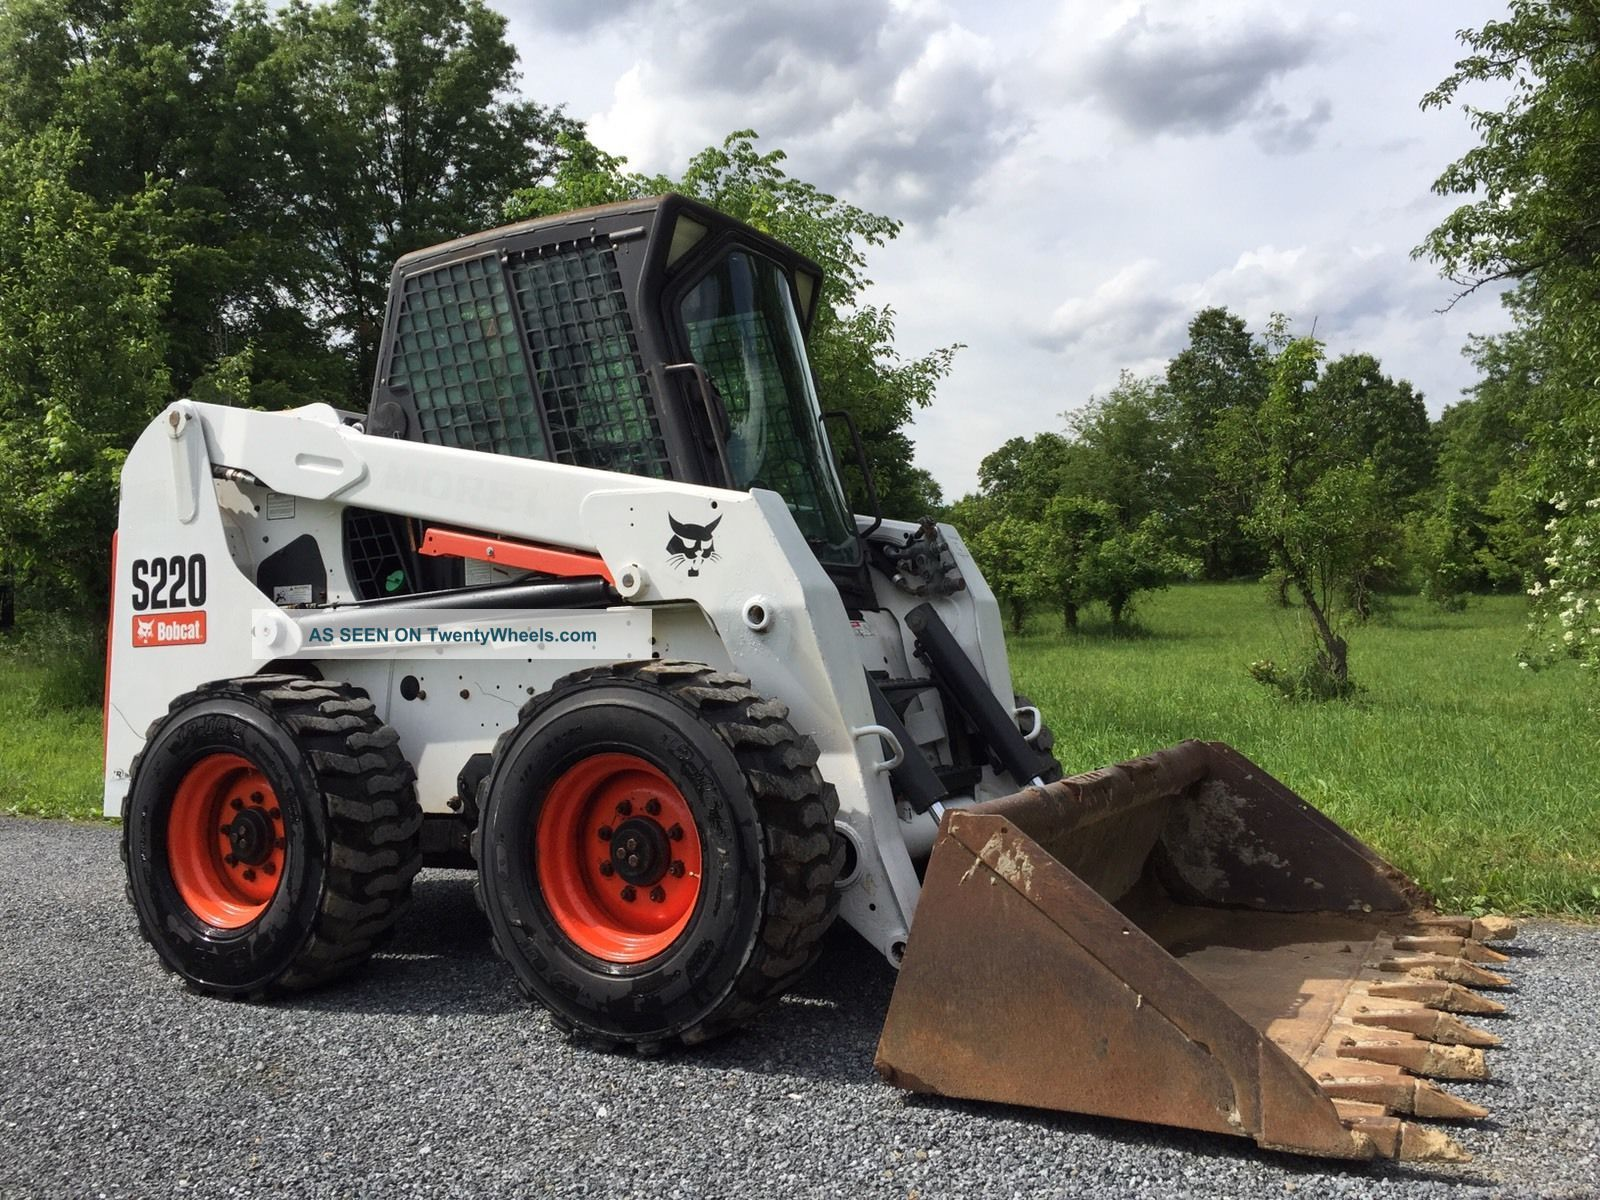 Bobcat S220 Skid Steer Loader Enclosed Cab W/ Heat Cheap Skid Steer Loaders photo